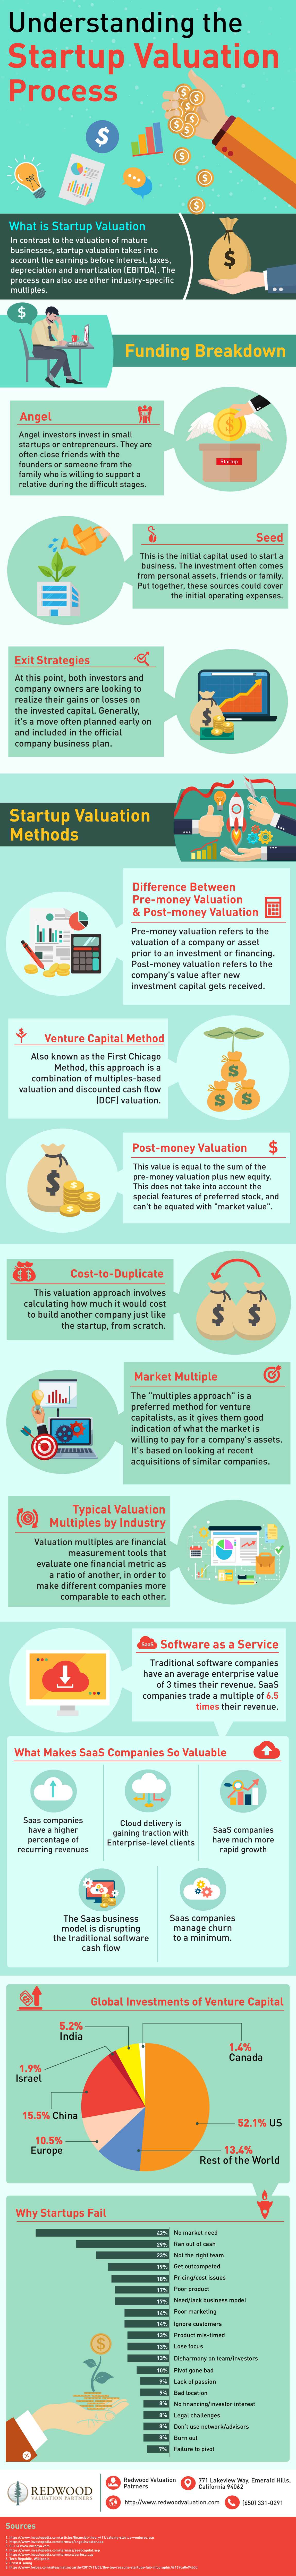 How to Value a Startup - Infographic